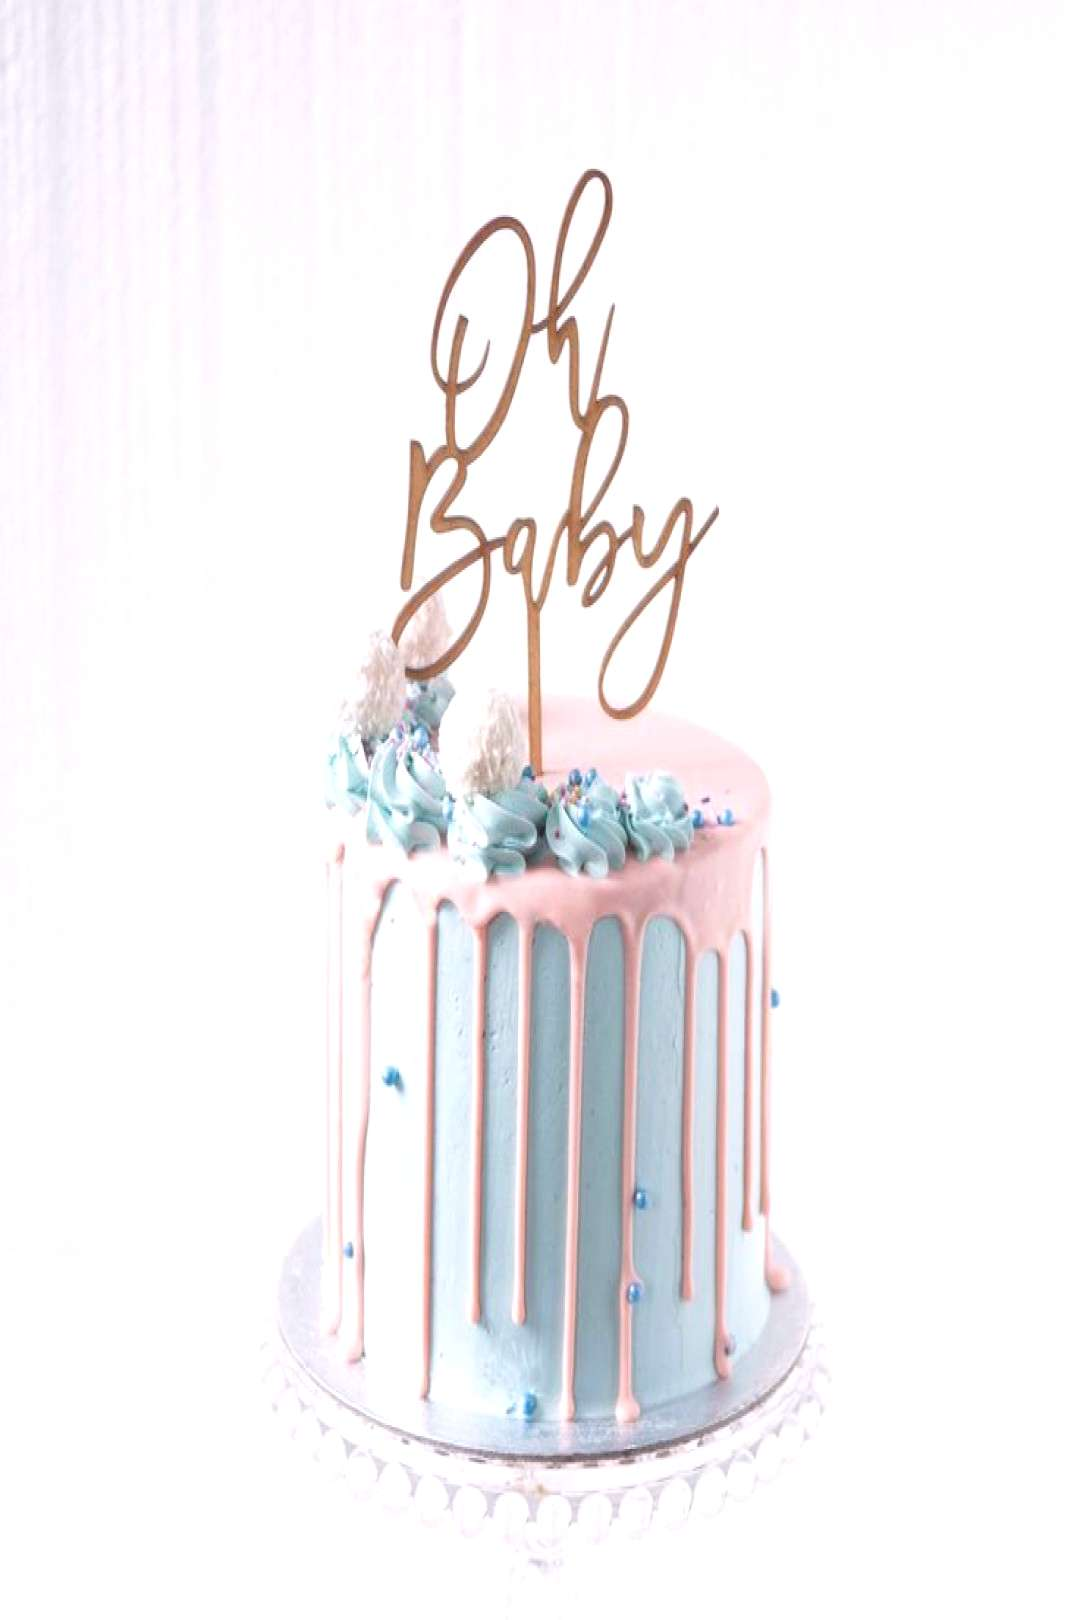 A stunning gender reveal drip cake, complete with contrasting baby blues and blush pinks. Adorned w